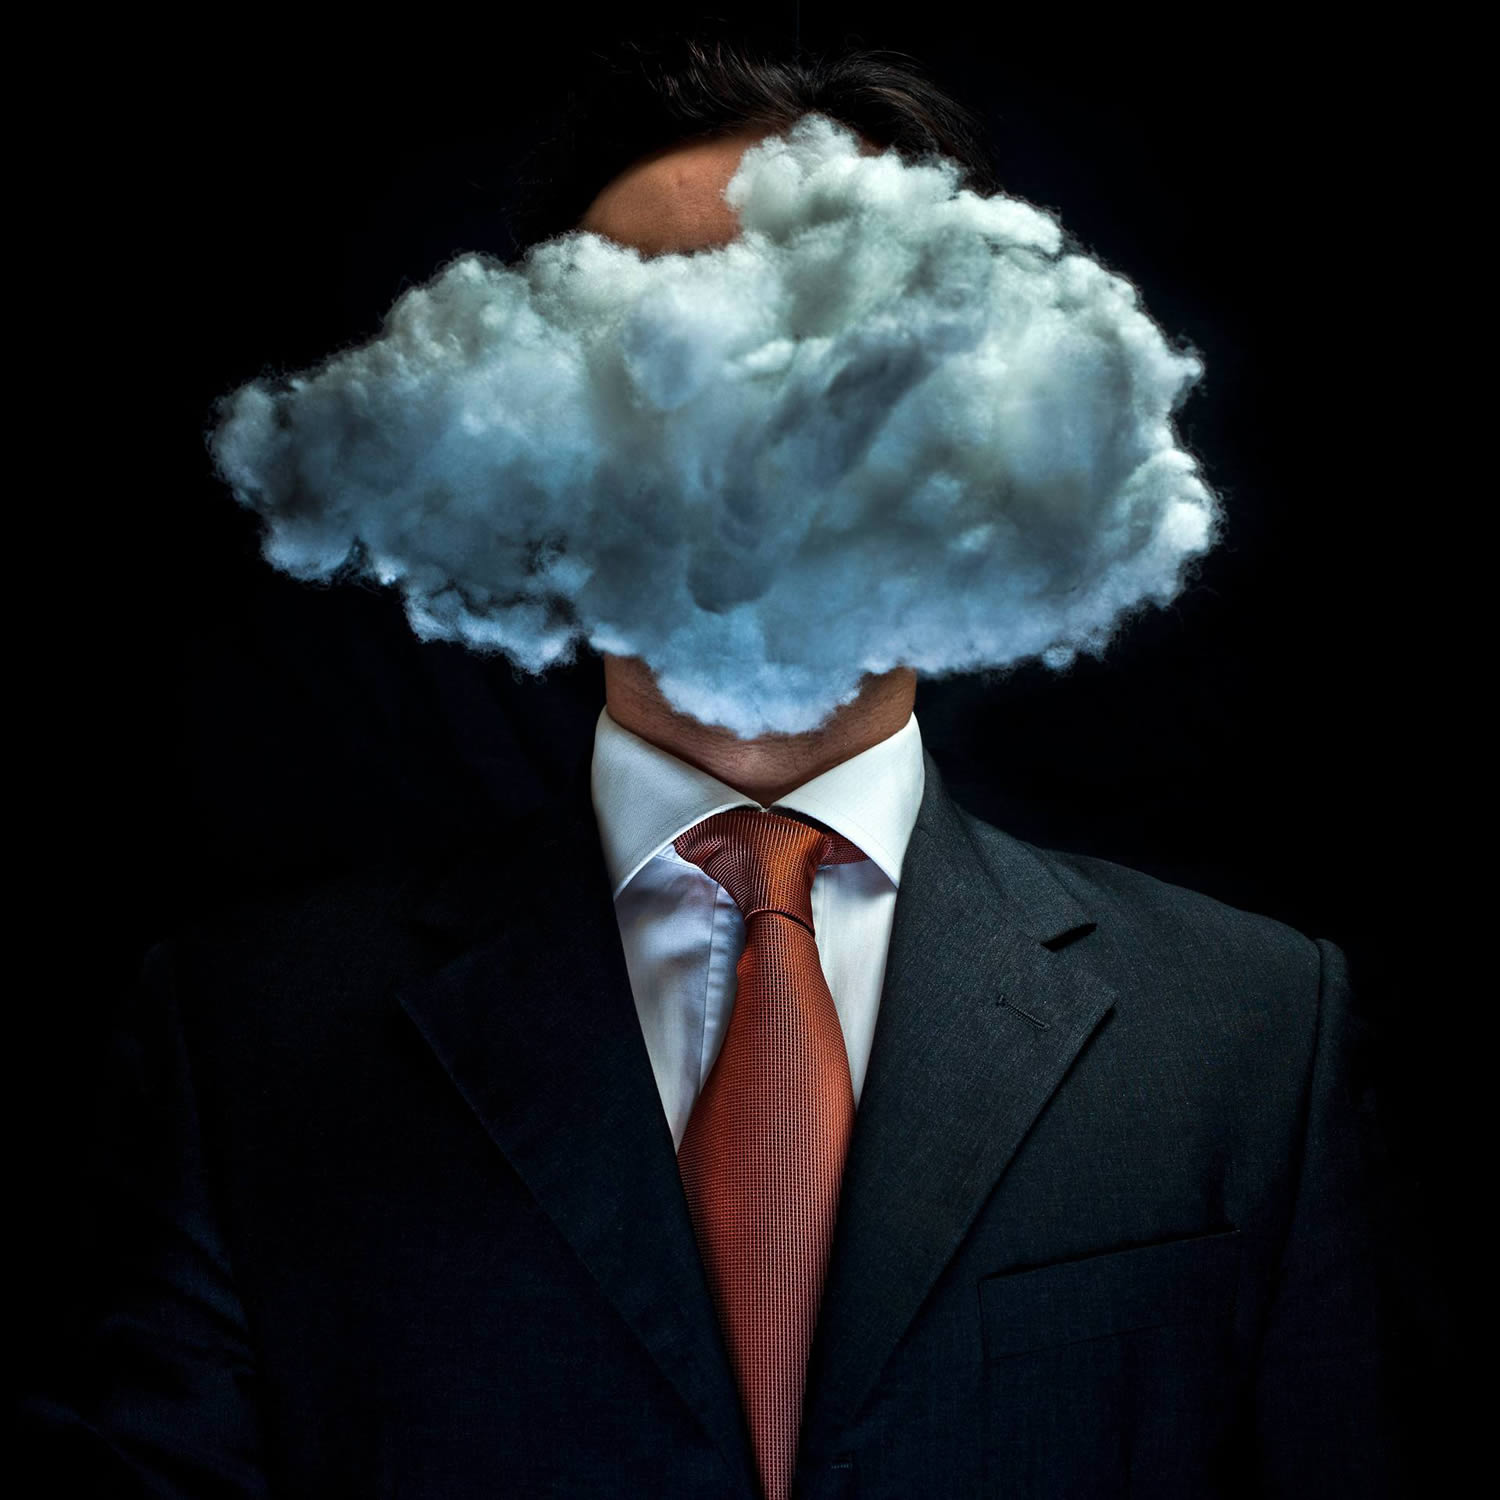 The cloud by Luca Pierro, inspired by Magritte, the son of man